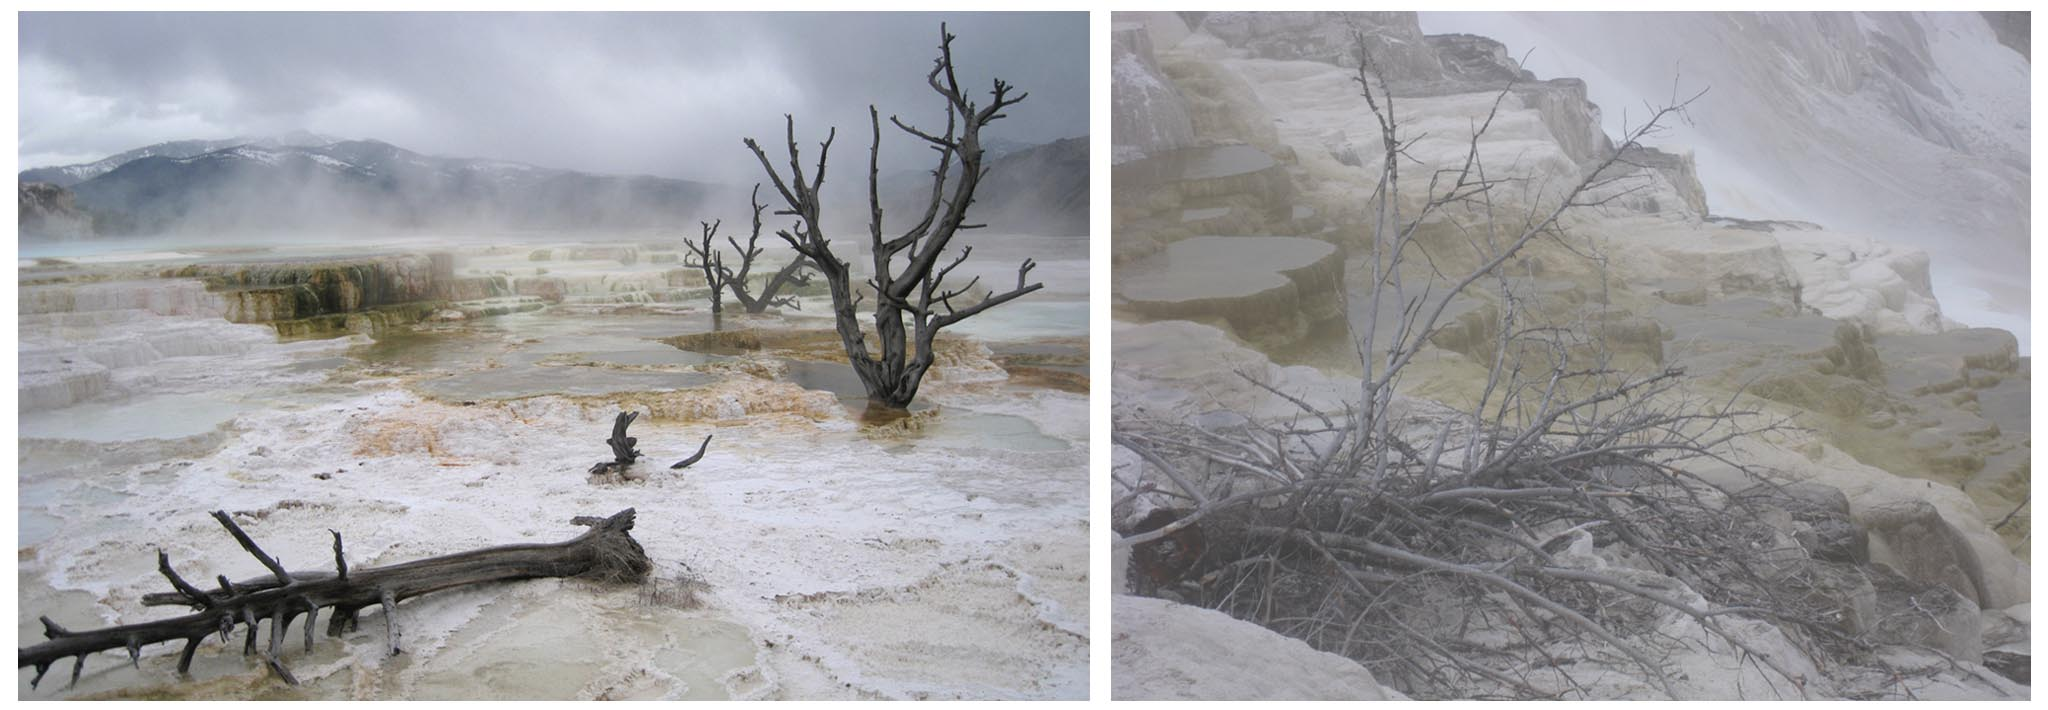 USA - Wyoming - Yellowstone - Mammoth Hot Springs // Travertine terraces in the mist